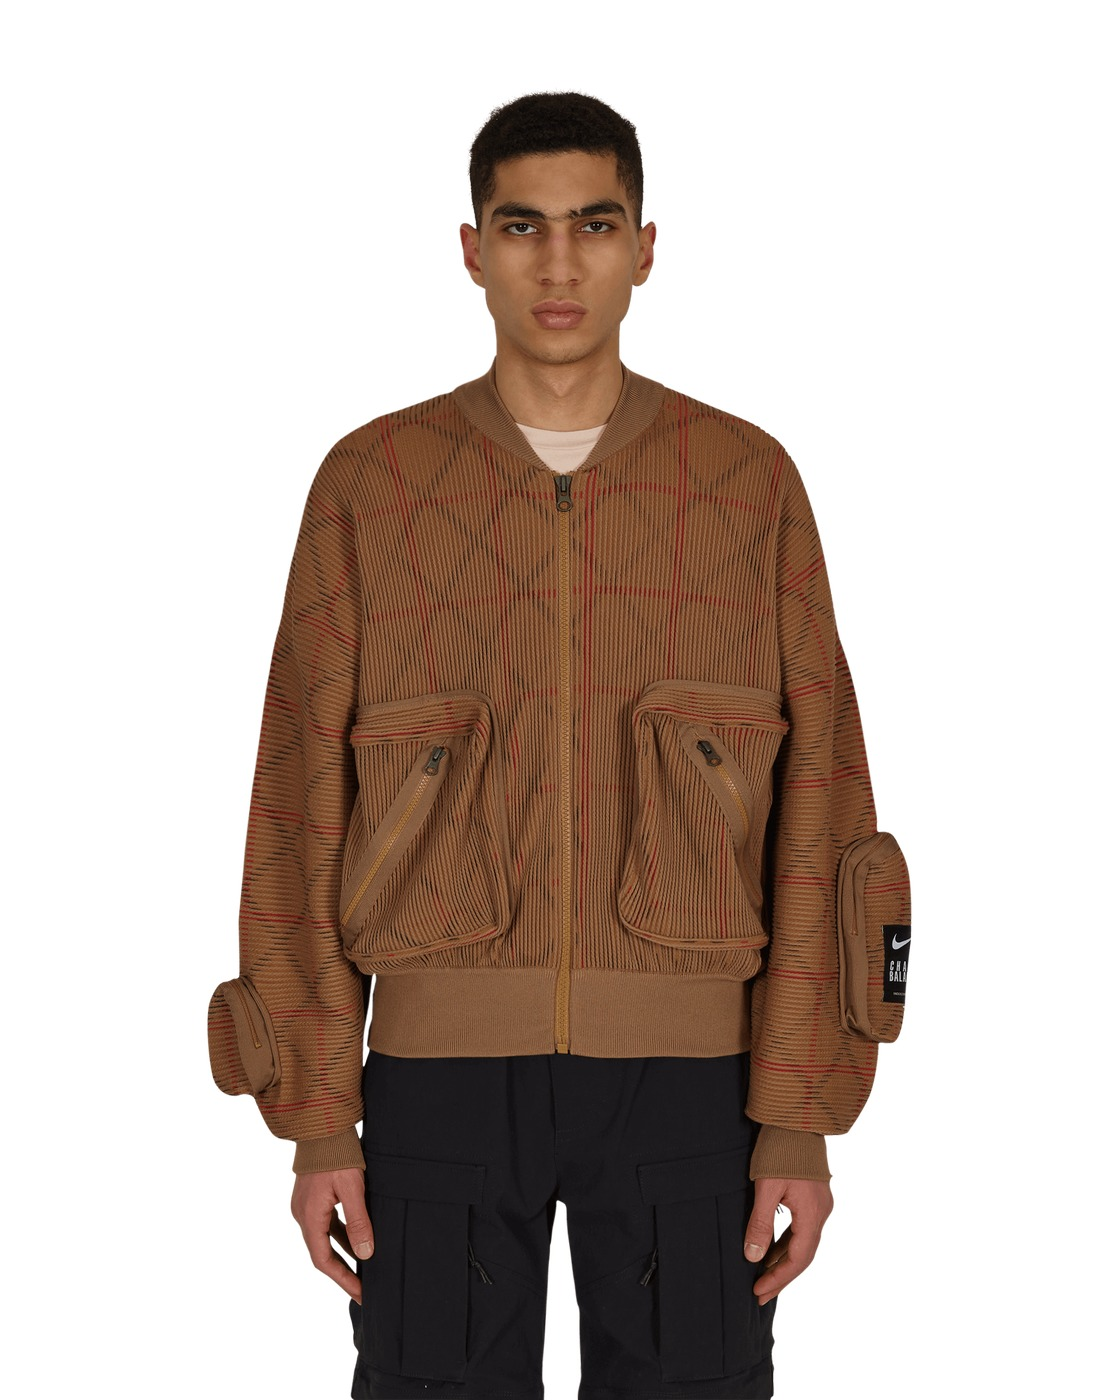 Nike Special Project Undercover Knit Ma 1 Jacket Lichen Brown